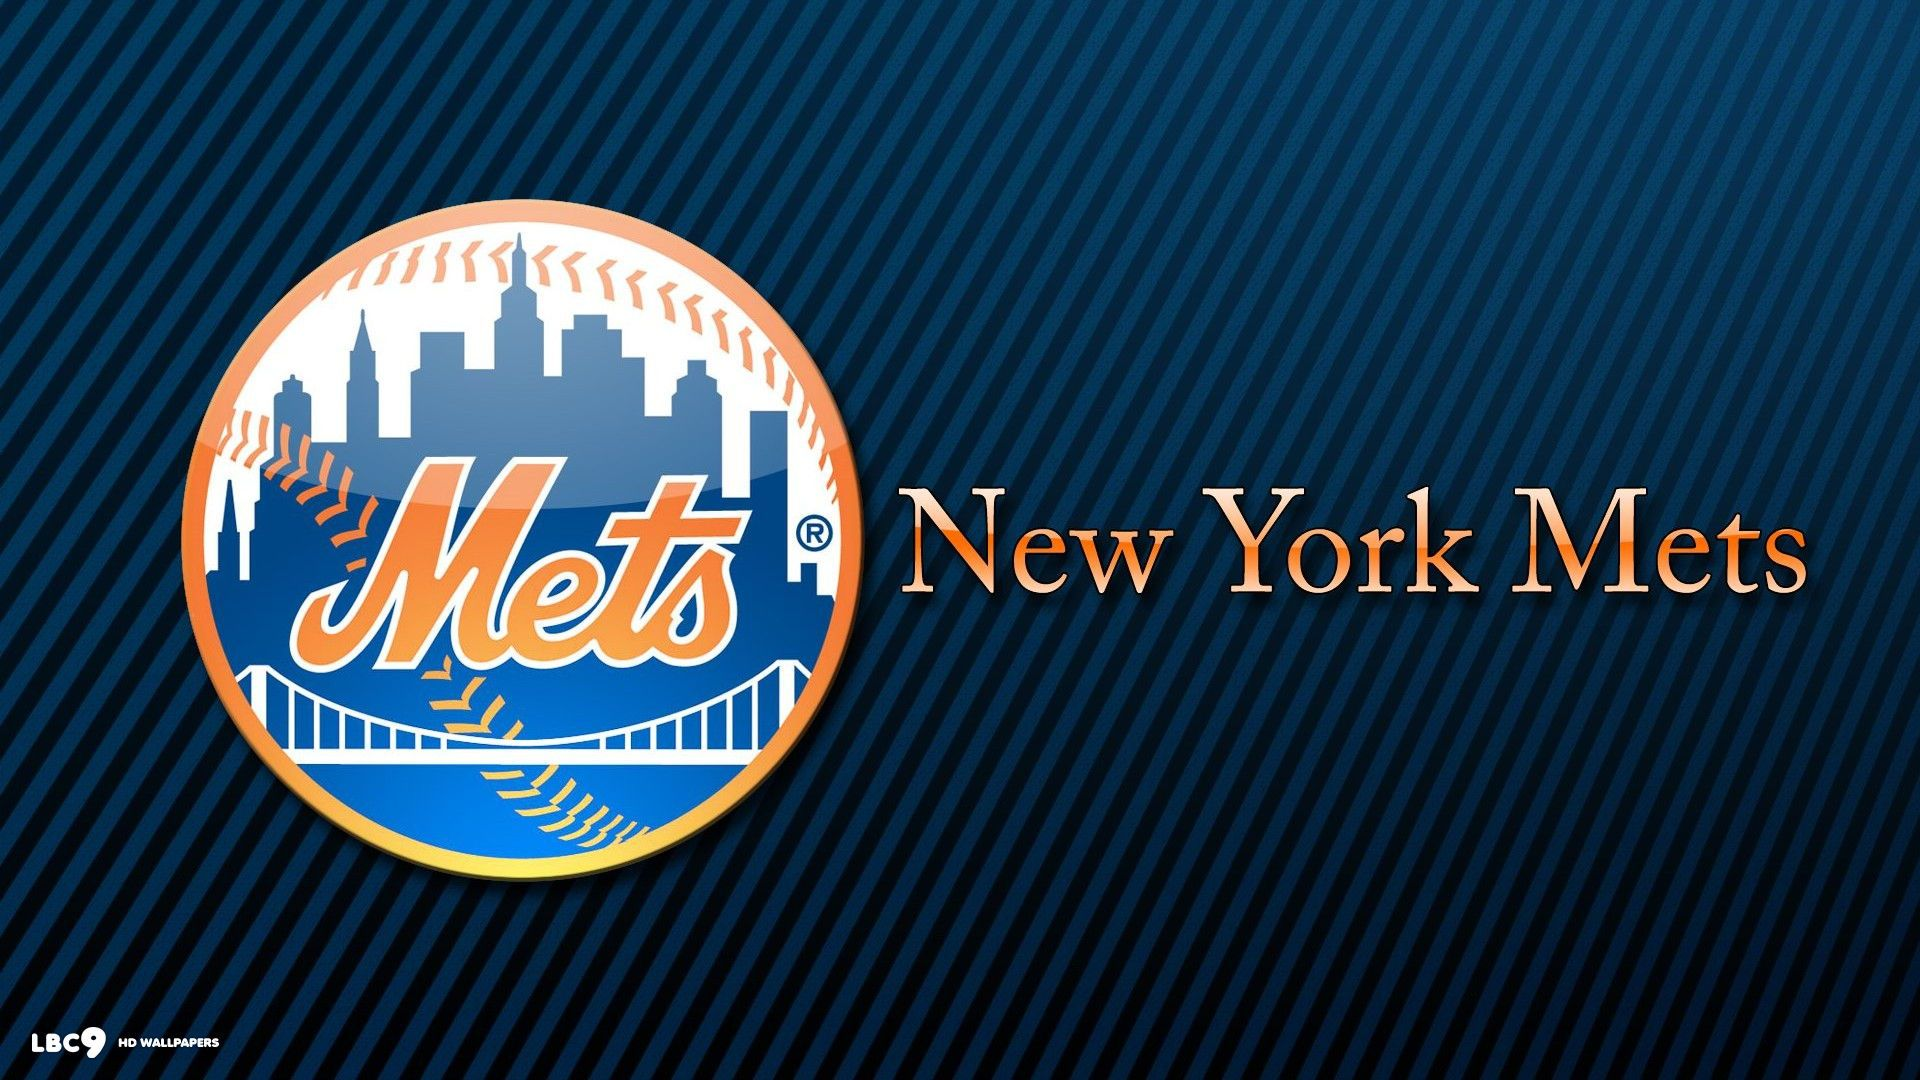 New York Mets picture